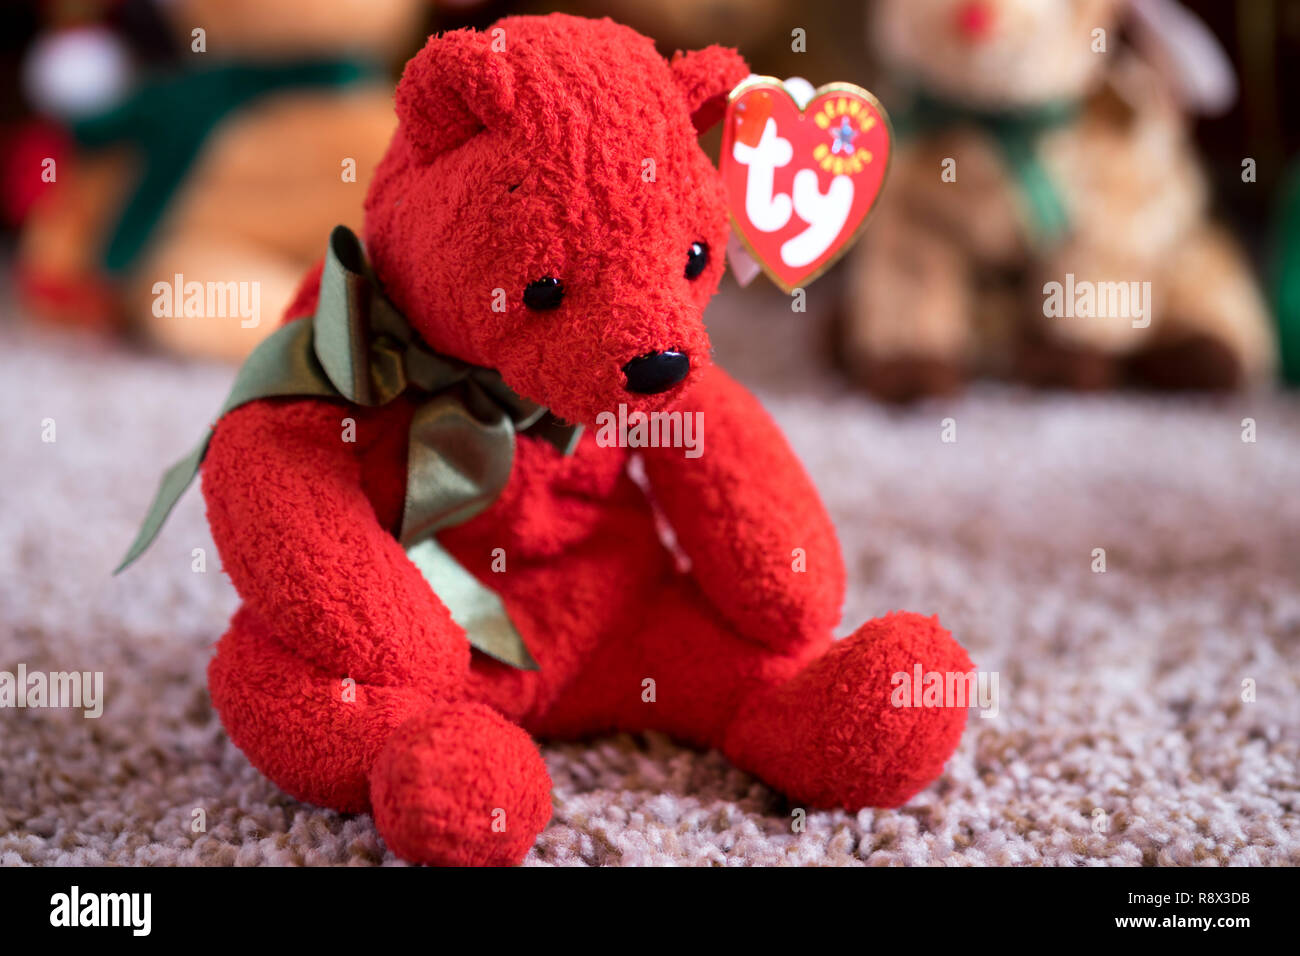 One of Ty company s holiday Beanie Babies in a family Christmas display. - 0ec87ce5fd46